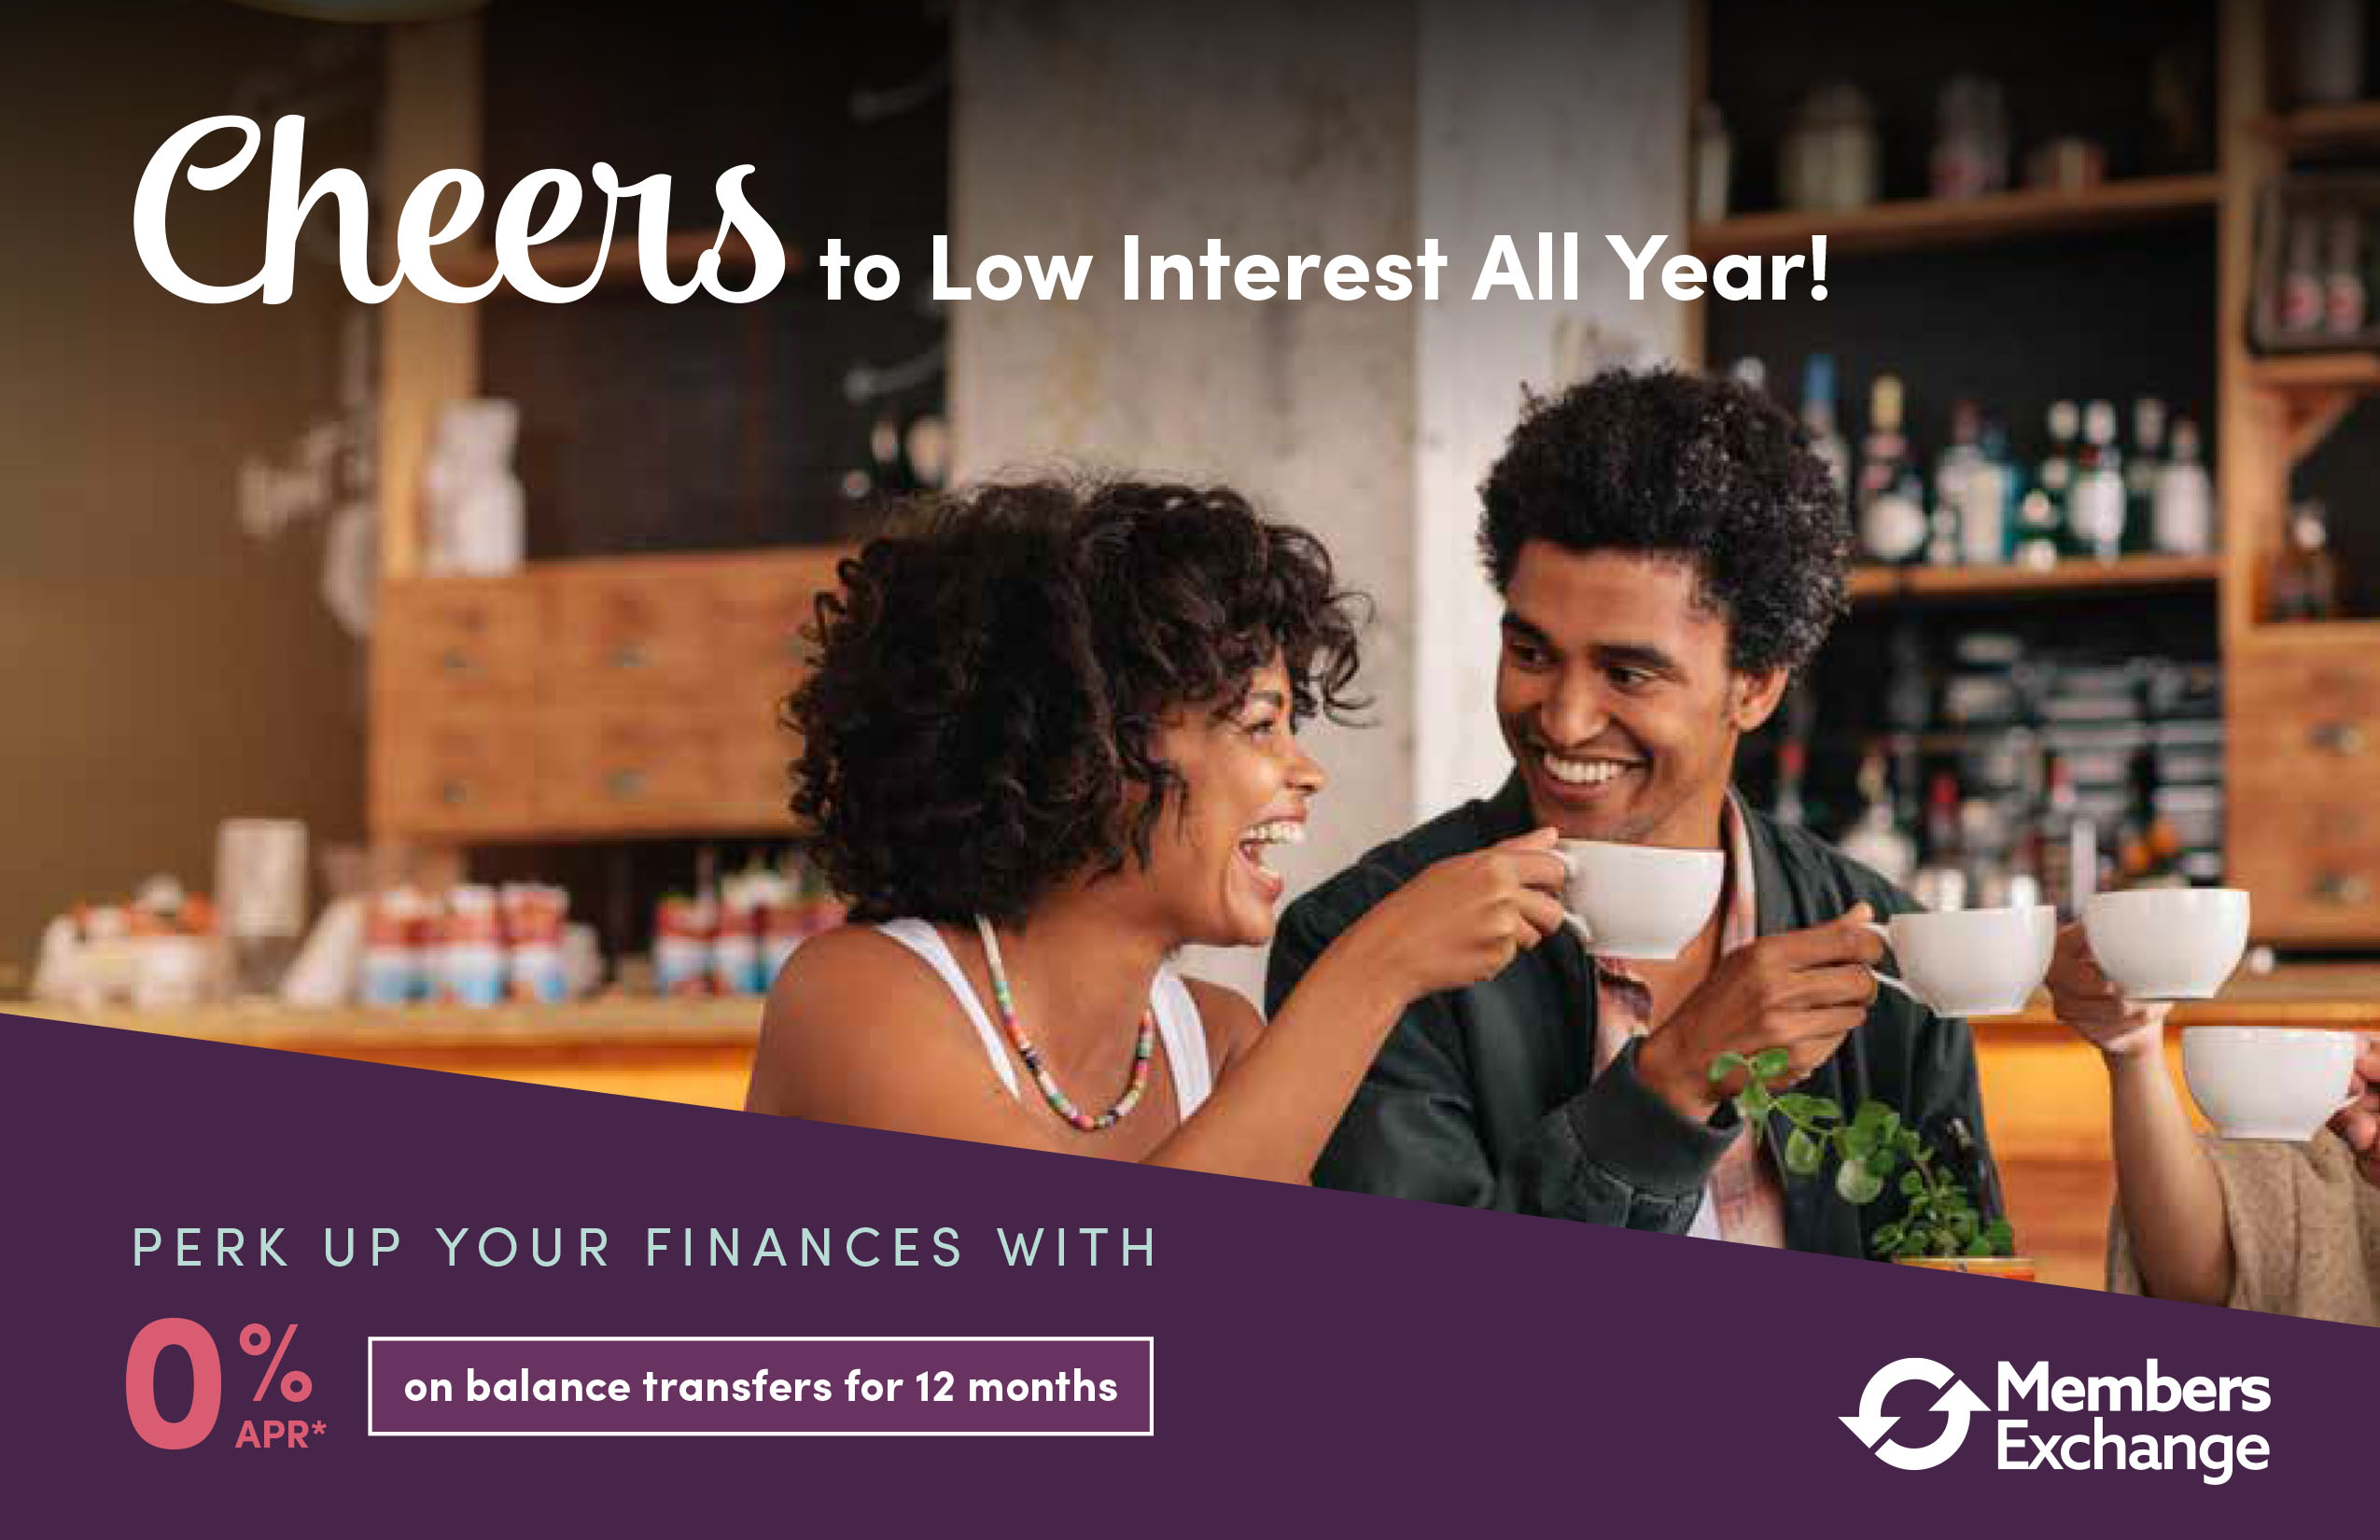 Cheers to Low Interest All Year! Perk up your finances with 0% APR on balance transfers for 12 months.